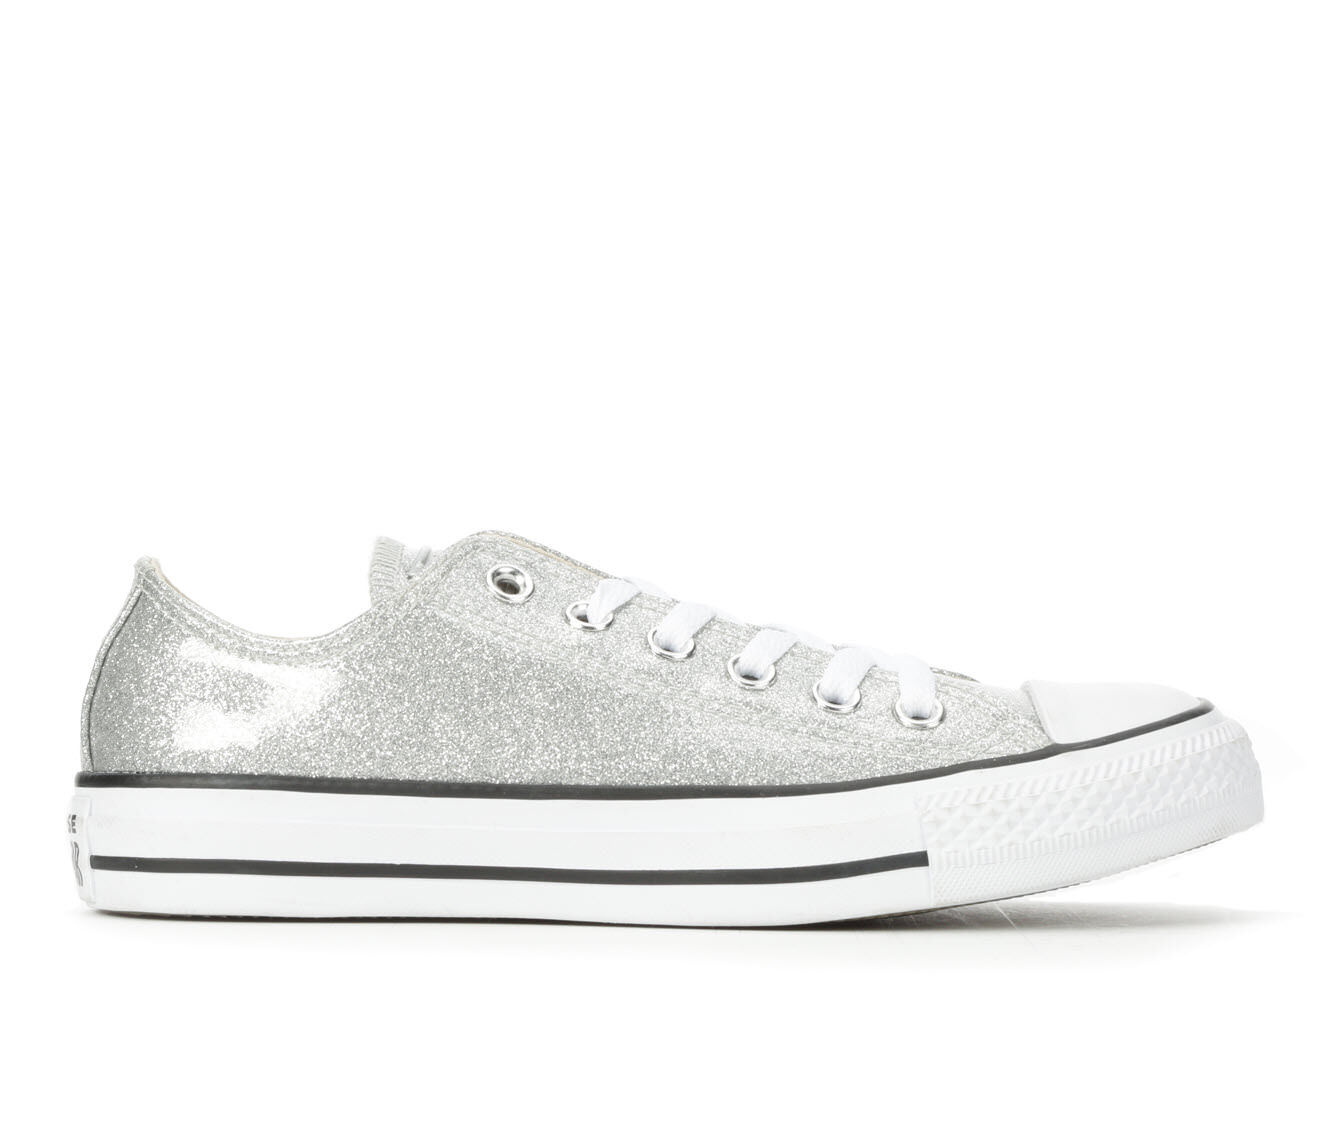 Women's Converse After Party Ox Sneakers Silver/White